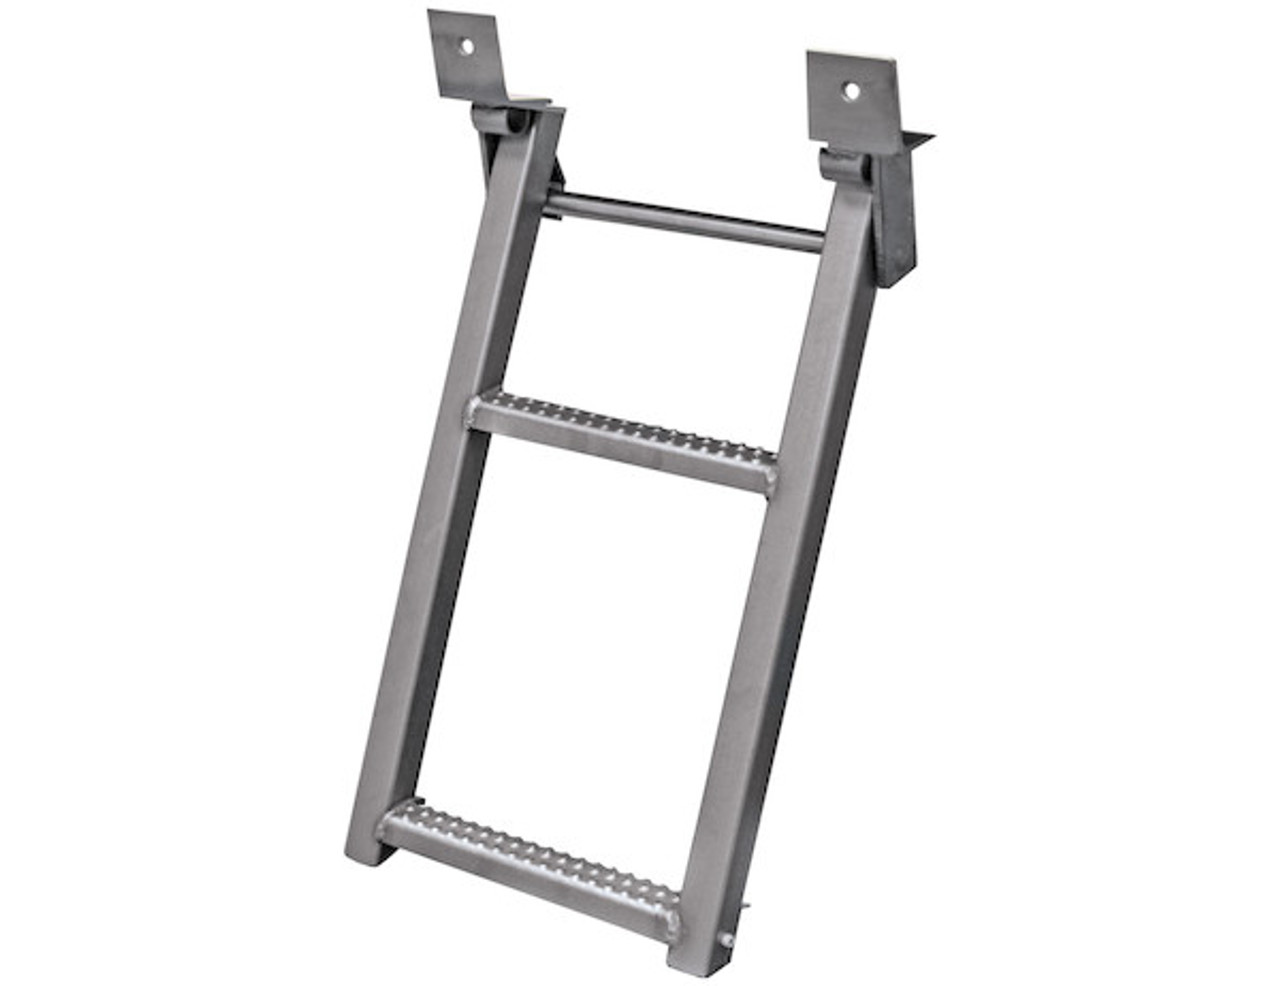 RS2SS Buyer's 2-Rung Stainless Retractable Truck Steps With Nonslip Tread - 17.38 X 30.25 Inch